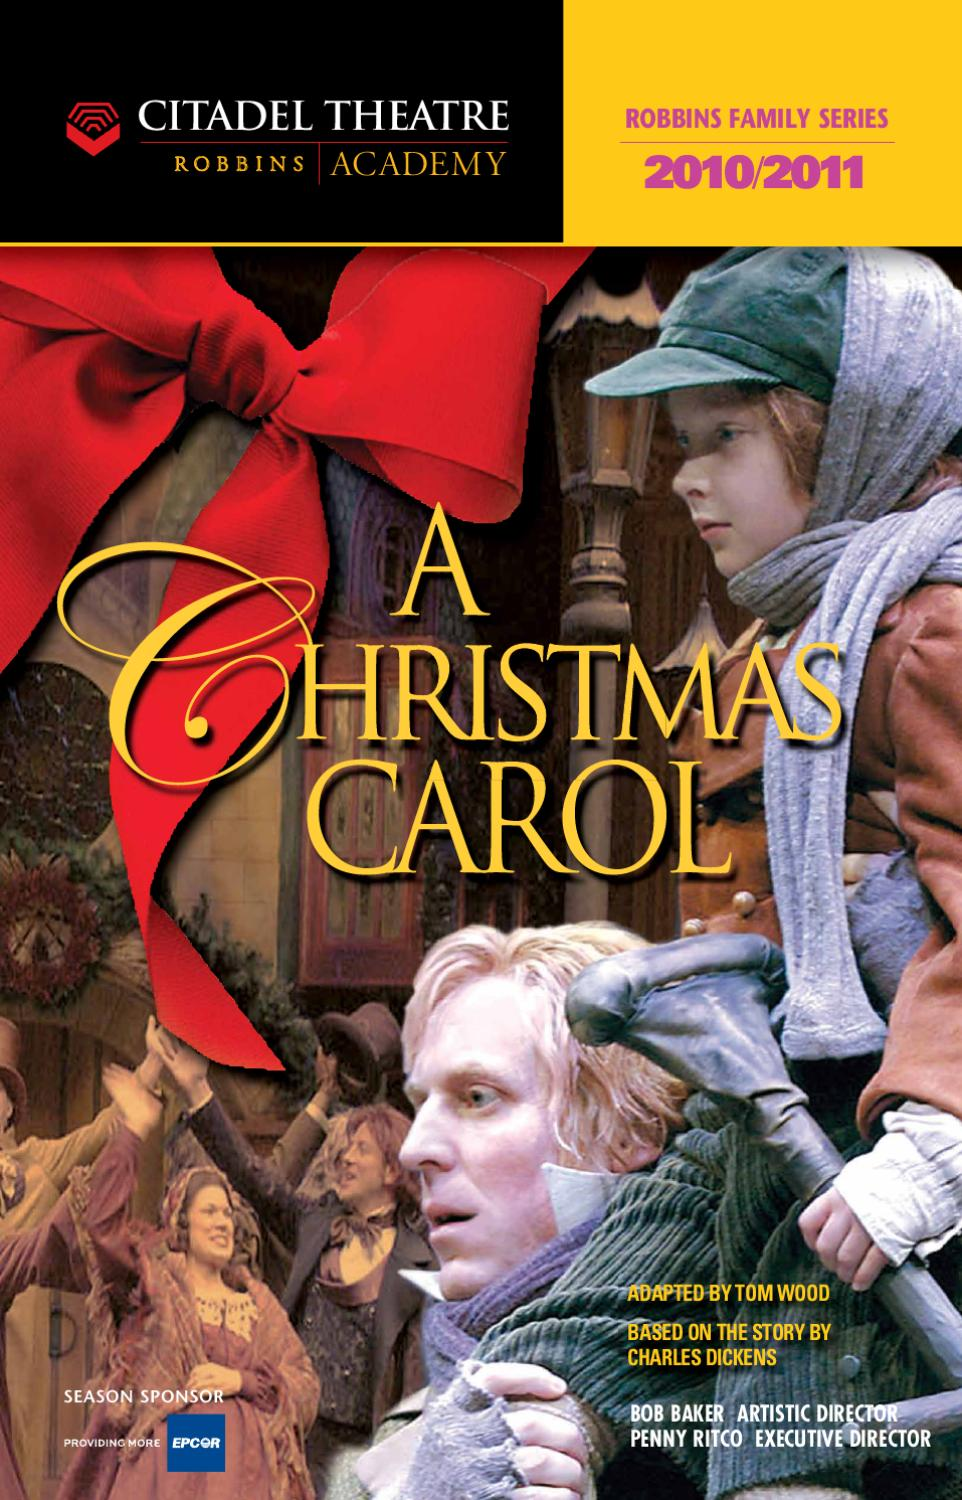 heartland the plete seasons 1 10 set on dvd pristine a place to call home complete series A Christmas Carol - Citadel playbill